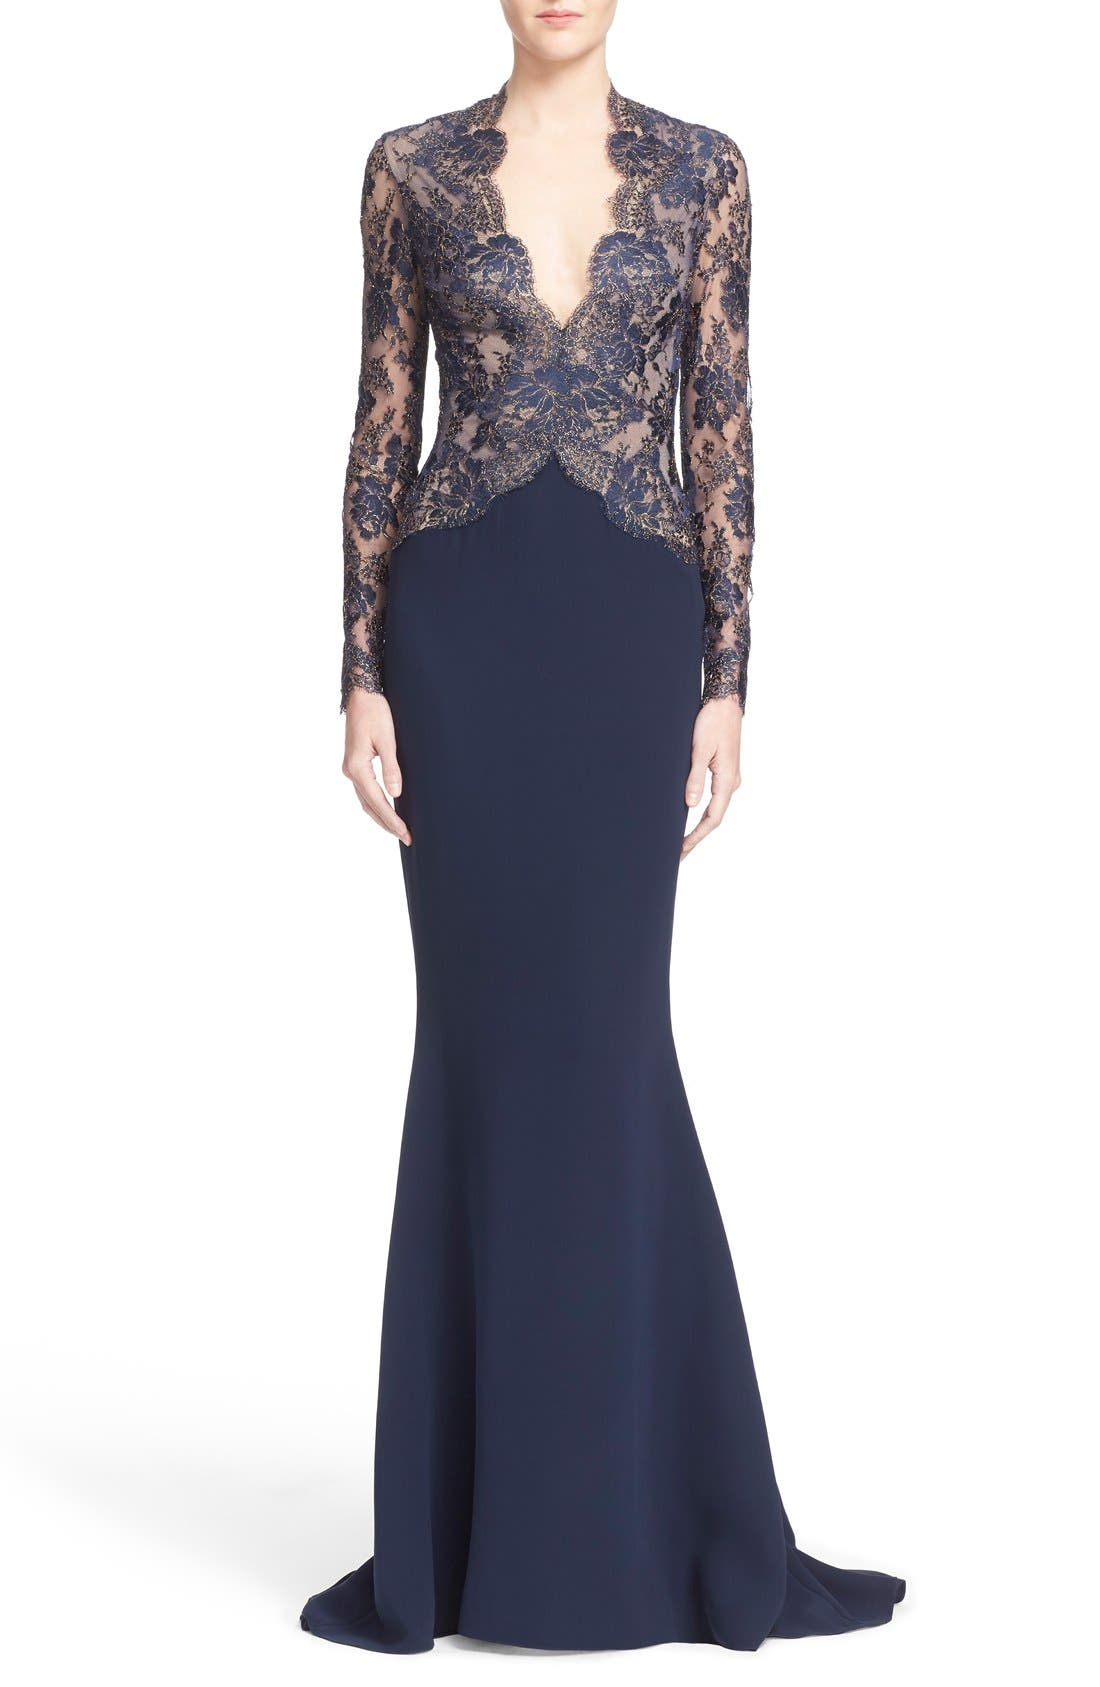 Alternate Image 1 Selected - Reem Acra V-Neck Lace & Silk Crepe Trumpet Gown